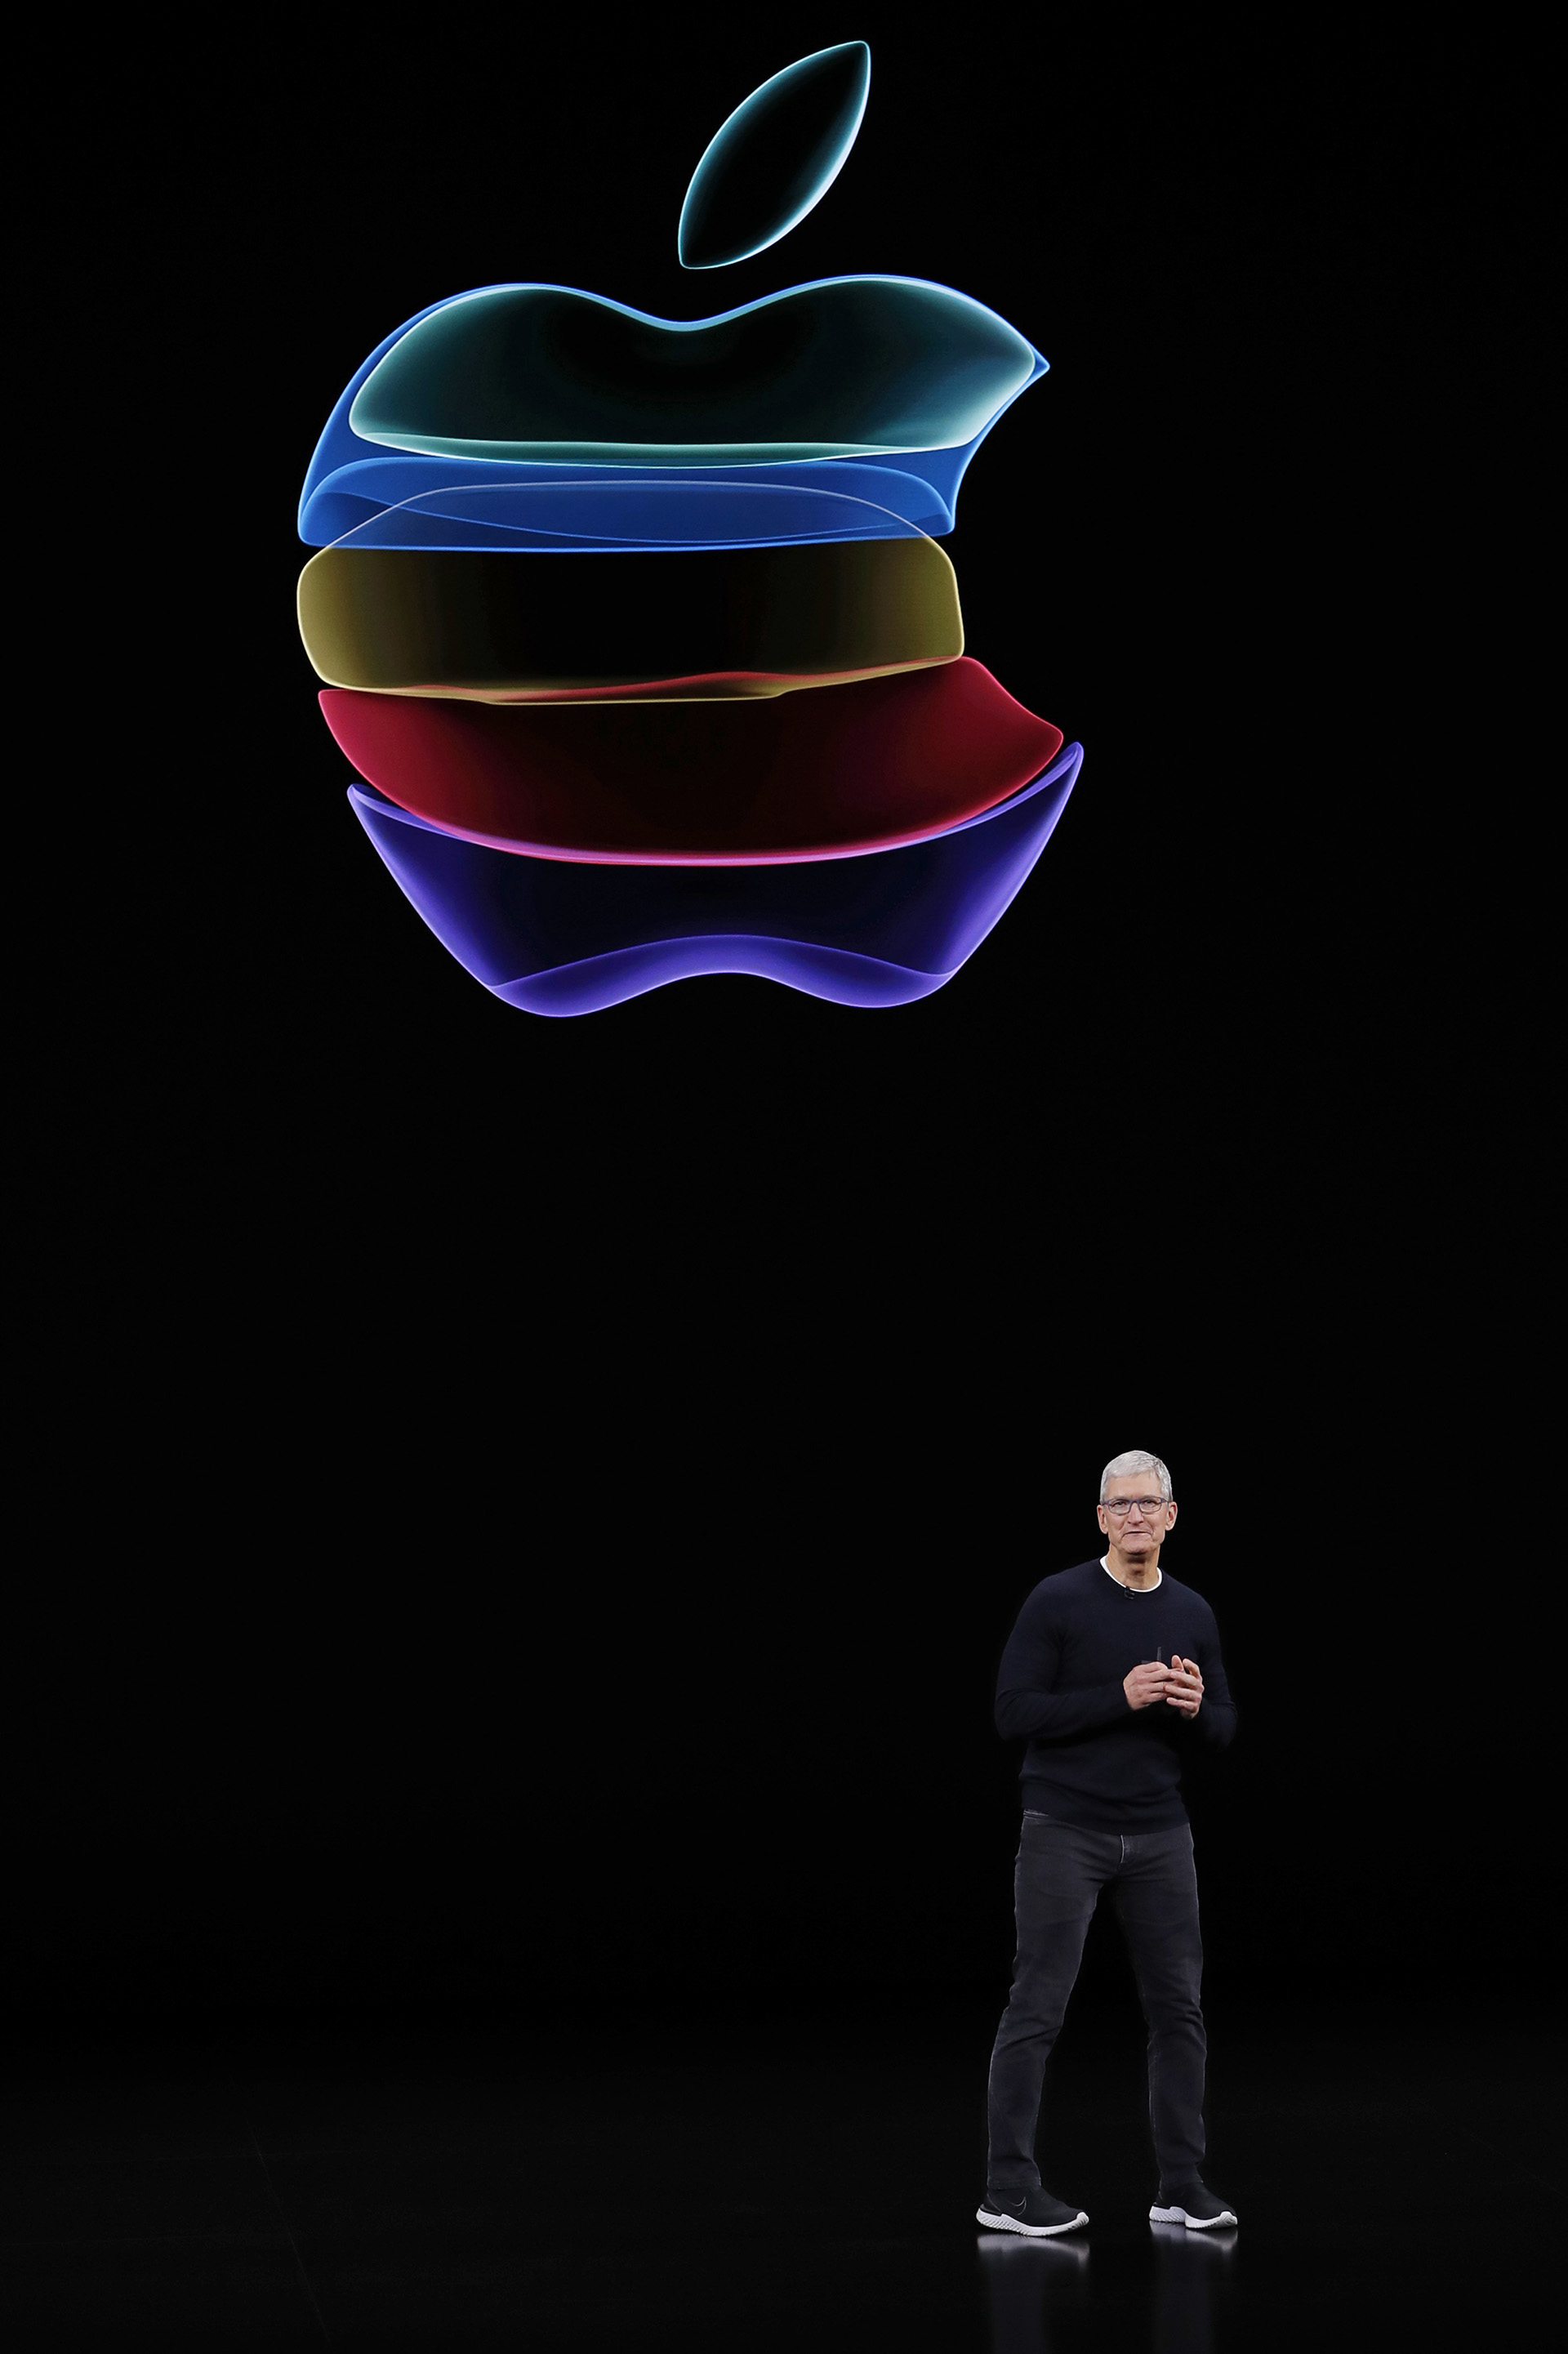 Tim Cook, el sucesor de Steve Jobs en la dirección de Apple (REUTERS/Stephen Lam)